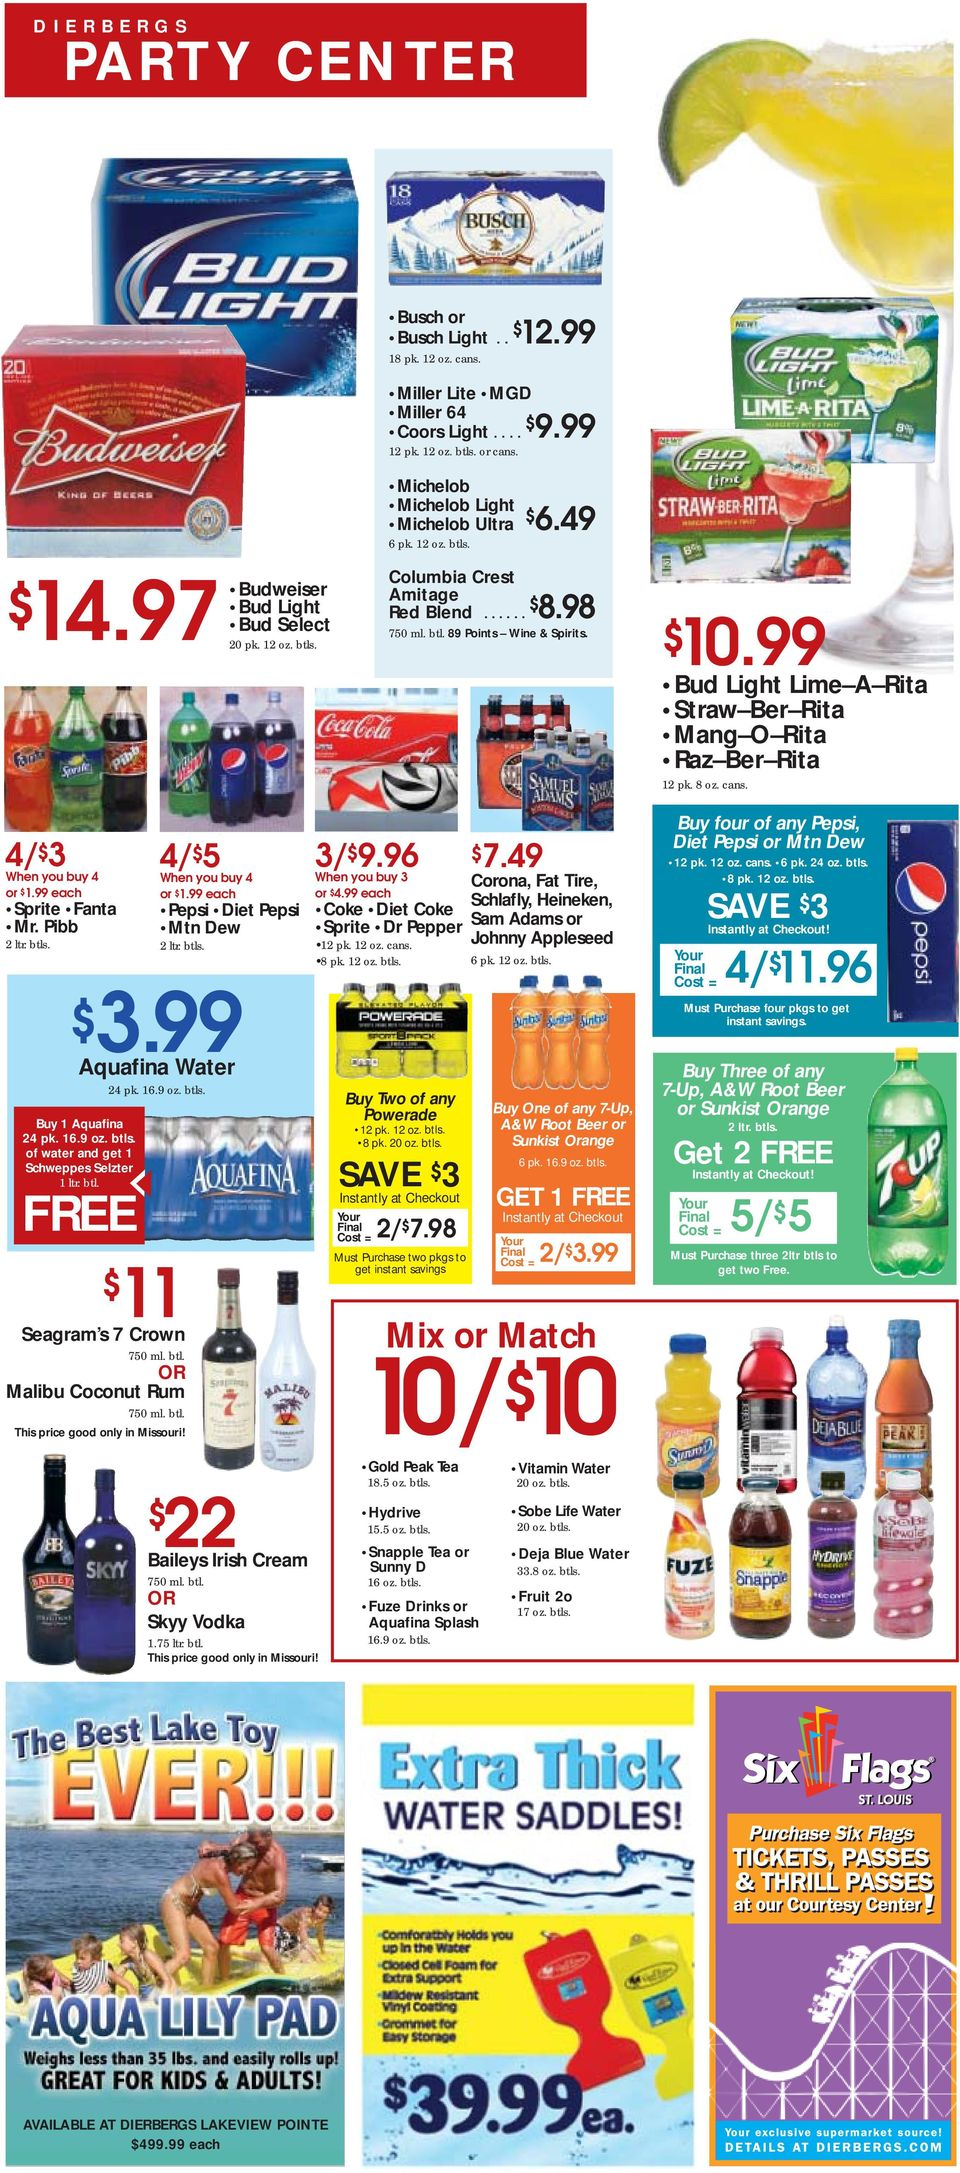 Memorial Day 2013 Bbq Coupons additionally Oscar Mayer Hot Dogs 88 At Winco Or 94 At Target besides T3 197 further Smiths Match Up 130 additionally 3650101. on oscar mayer beef franks price